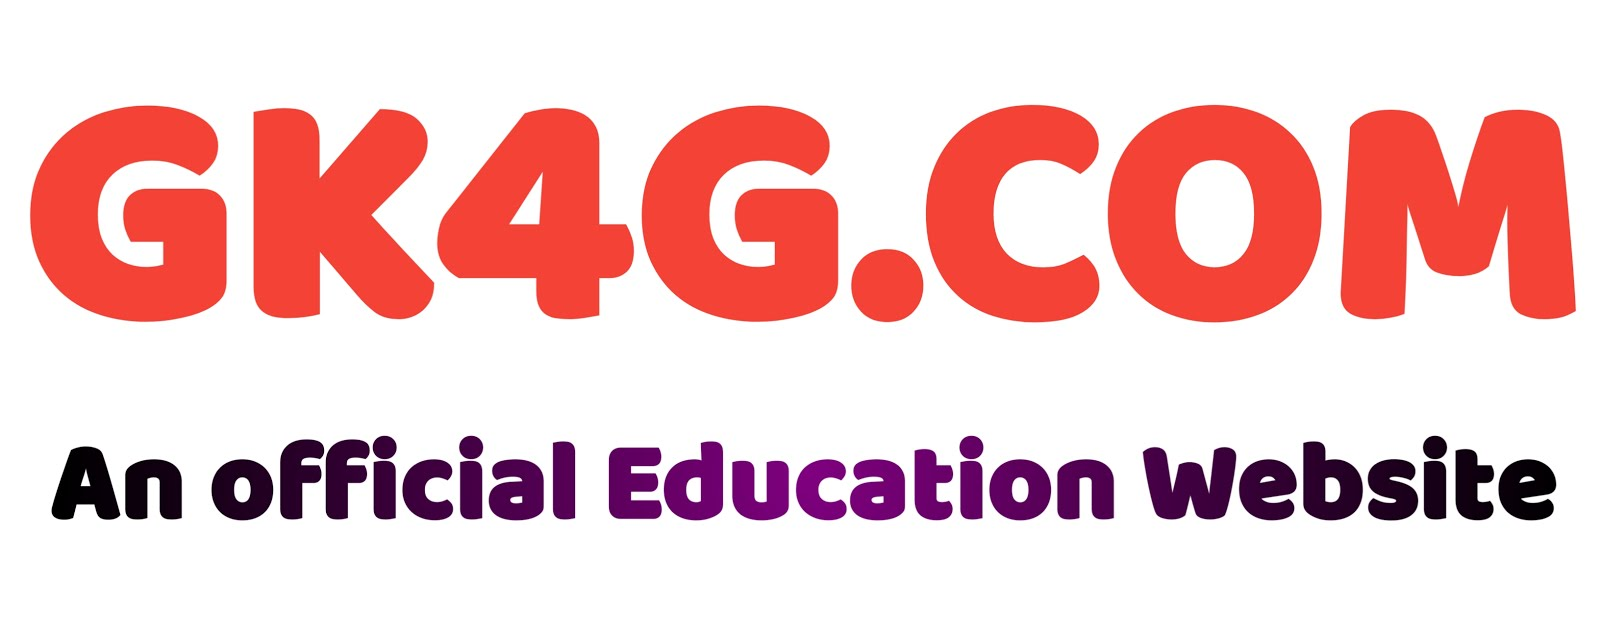 GK4G The Official Education Website